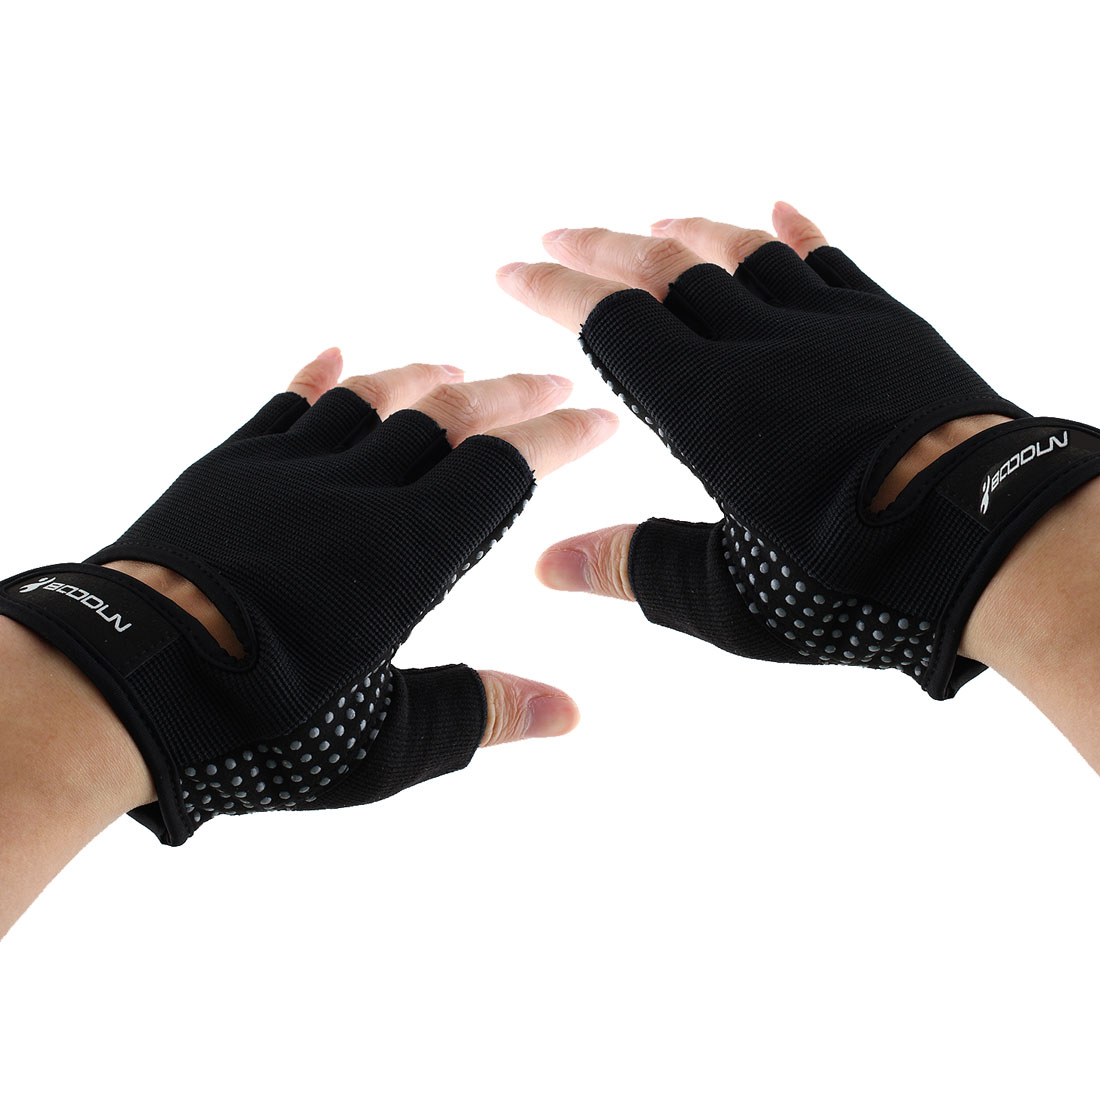 BOODUN Authorized Adult Unisex Spandex Adjustable Sports Training Workout Mittens Fitness Gloves Black S Pair